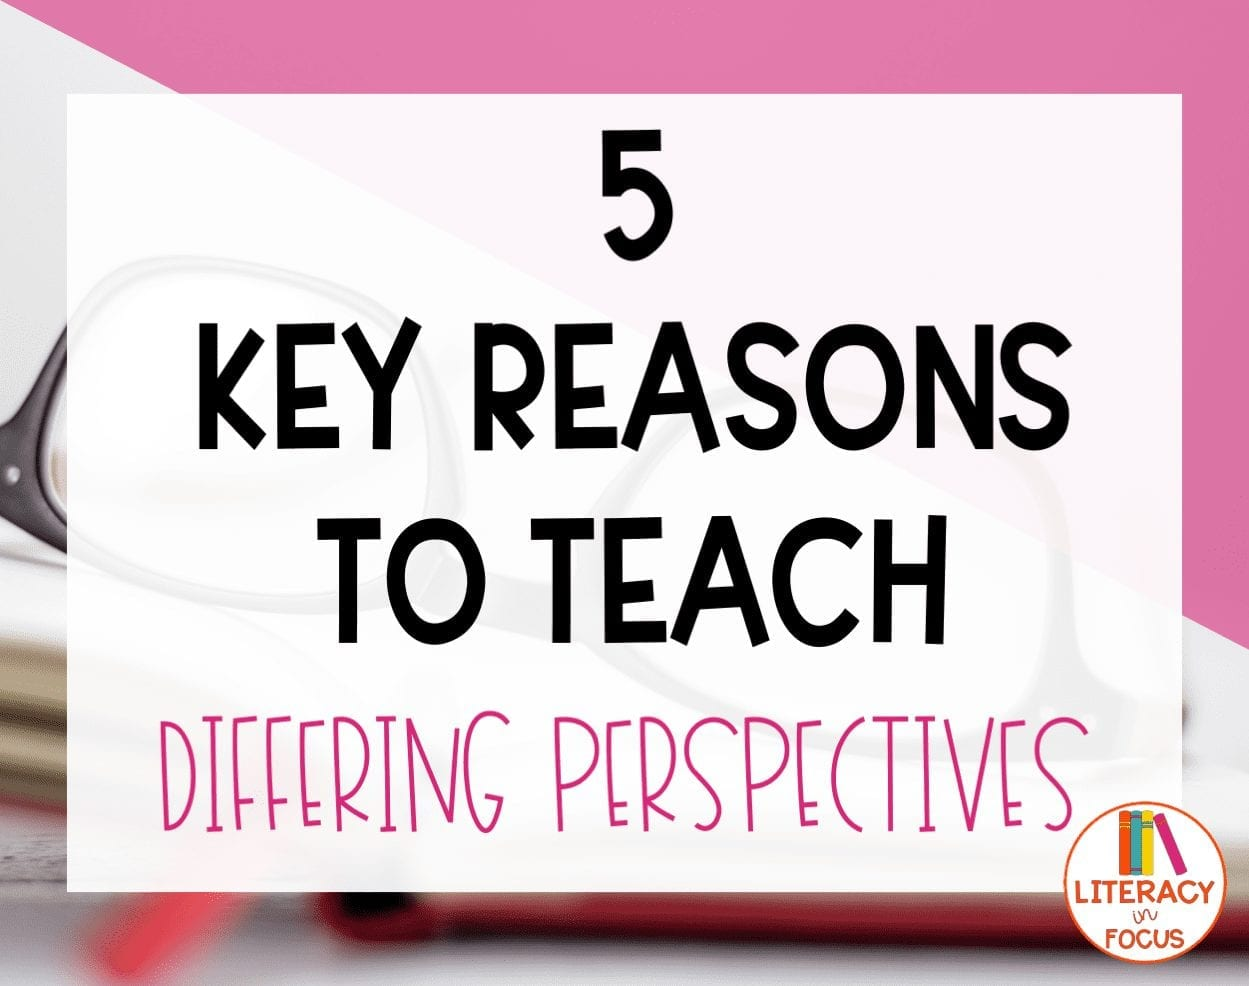 5 Reasons to Teach Differing Perspectives